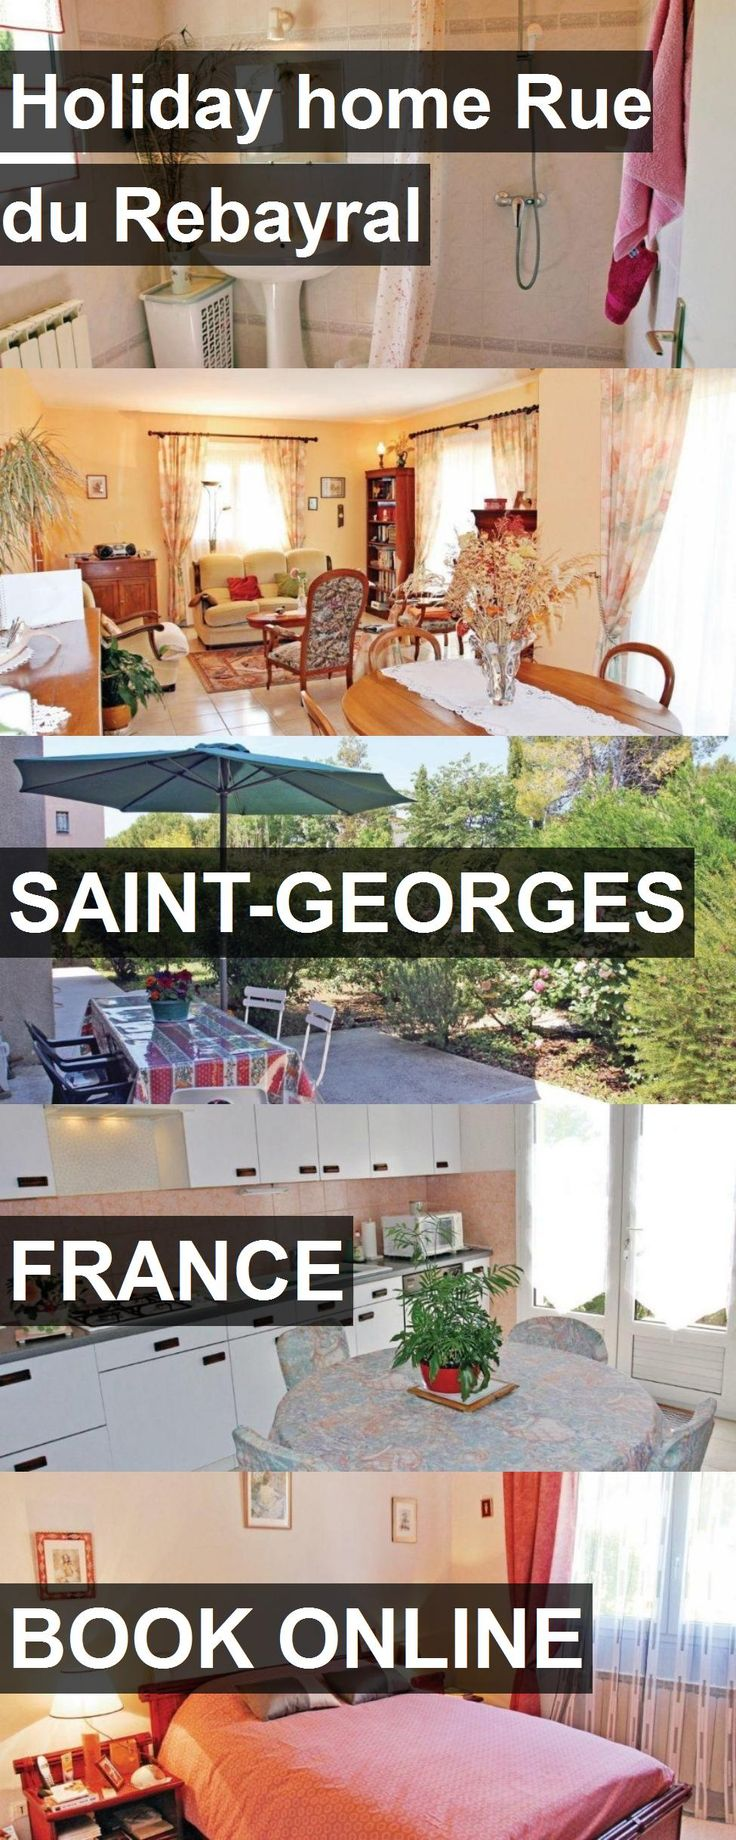 Hotel Holiday home Rue du Rebayral in Saint-Georges, France. For more information, photos, reviews and best prices please follow the link. #France #Saint-Georges #hotel #travel #vacation